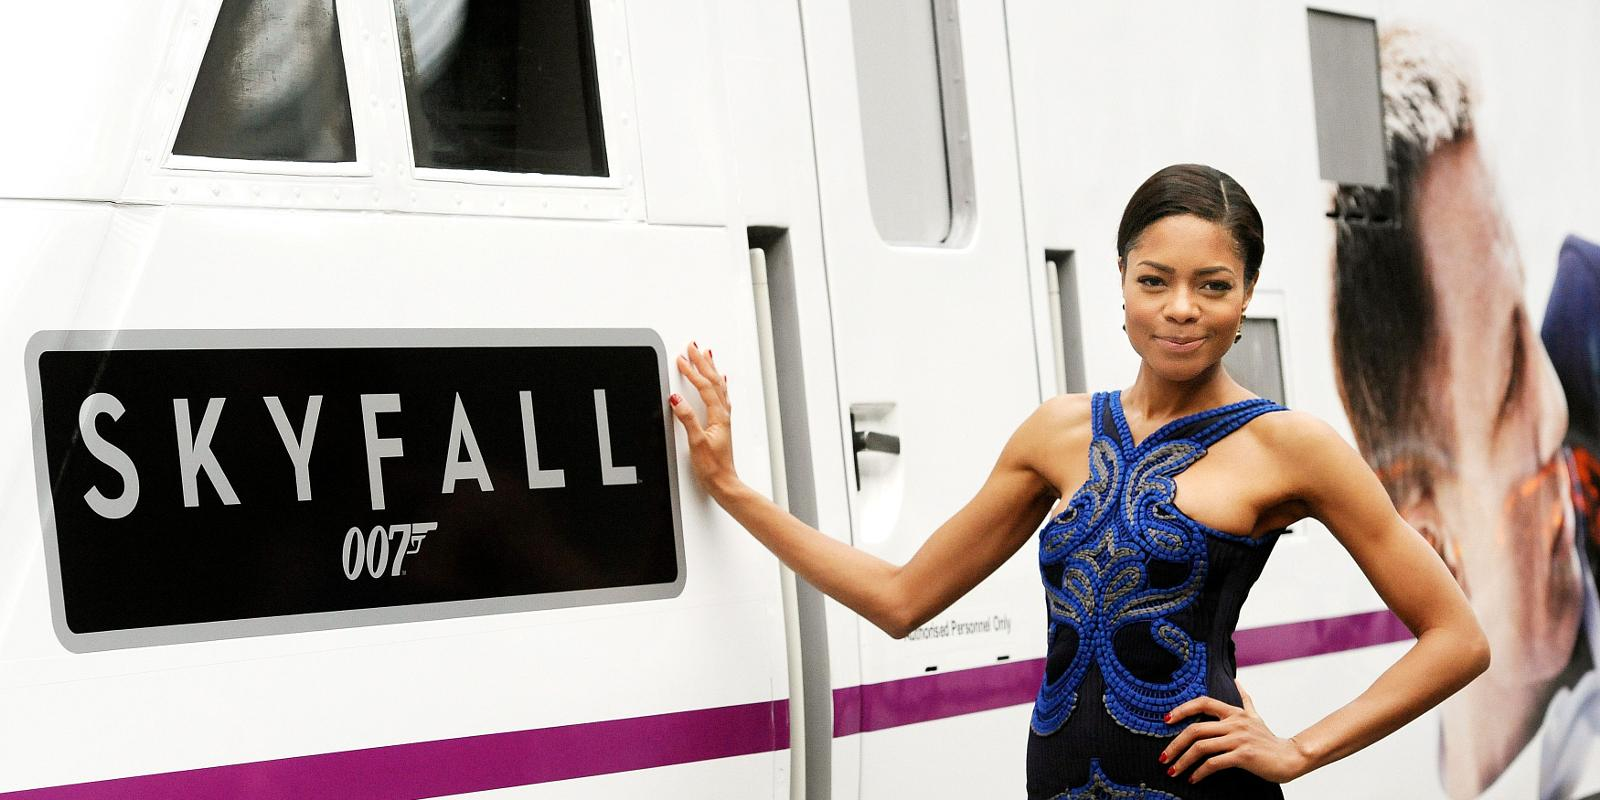 Skyfall\' train unveiled to mark Bond film\'s DVD release